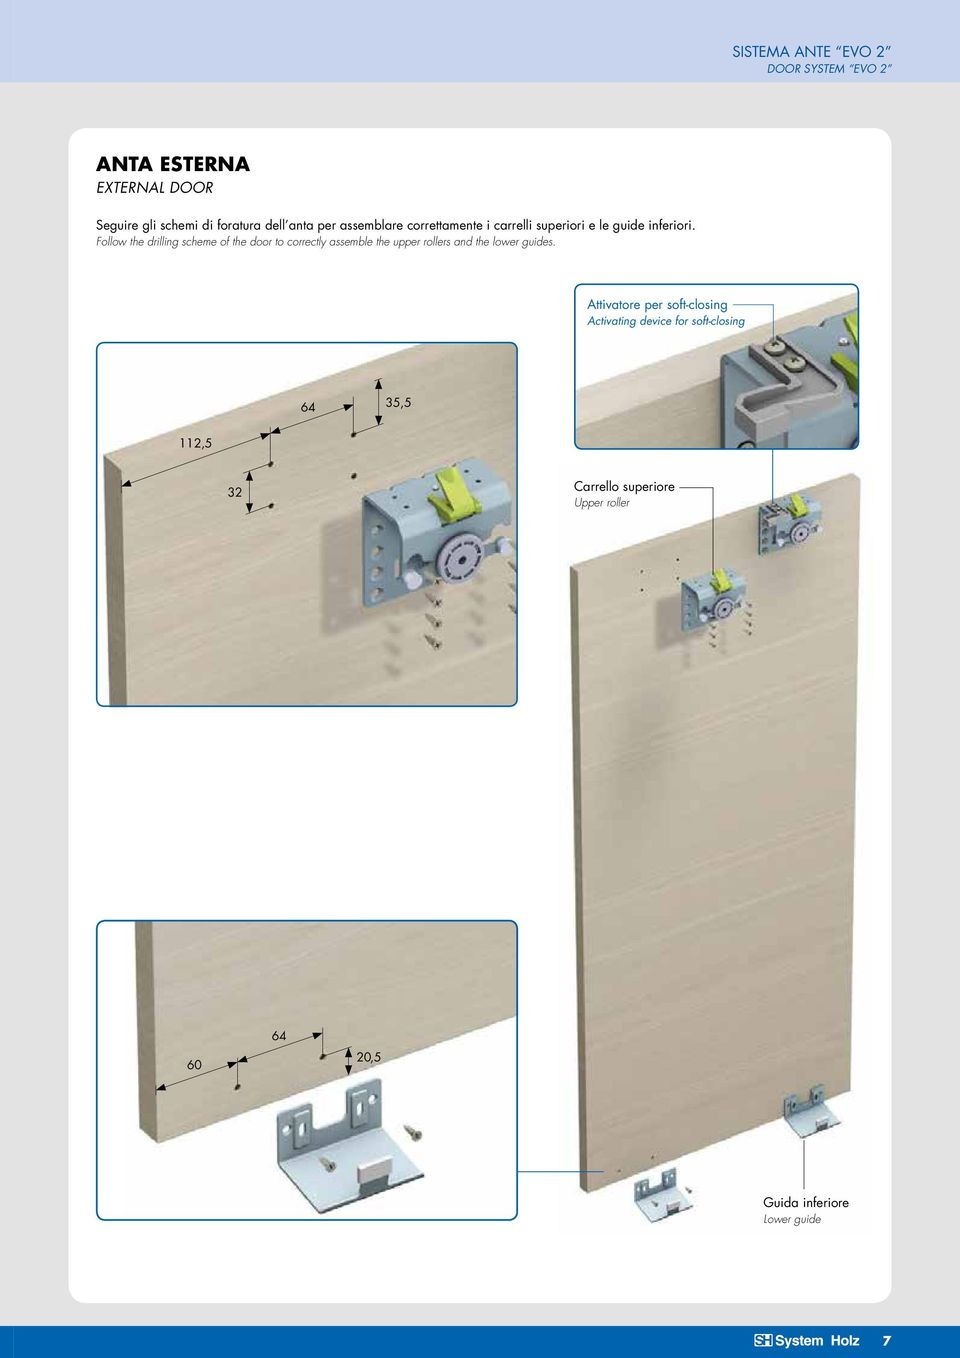 Follow the drilling scheme of the door to correctly assemble the upper rollers and the lower guides.